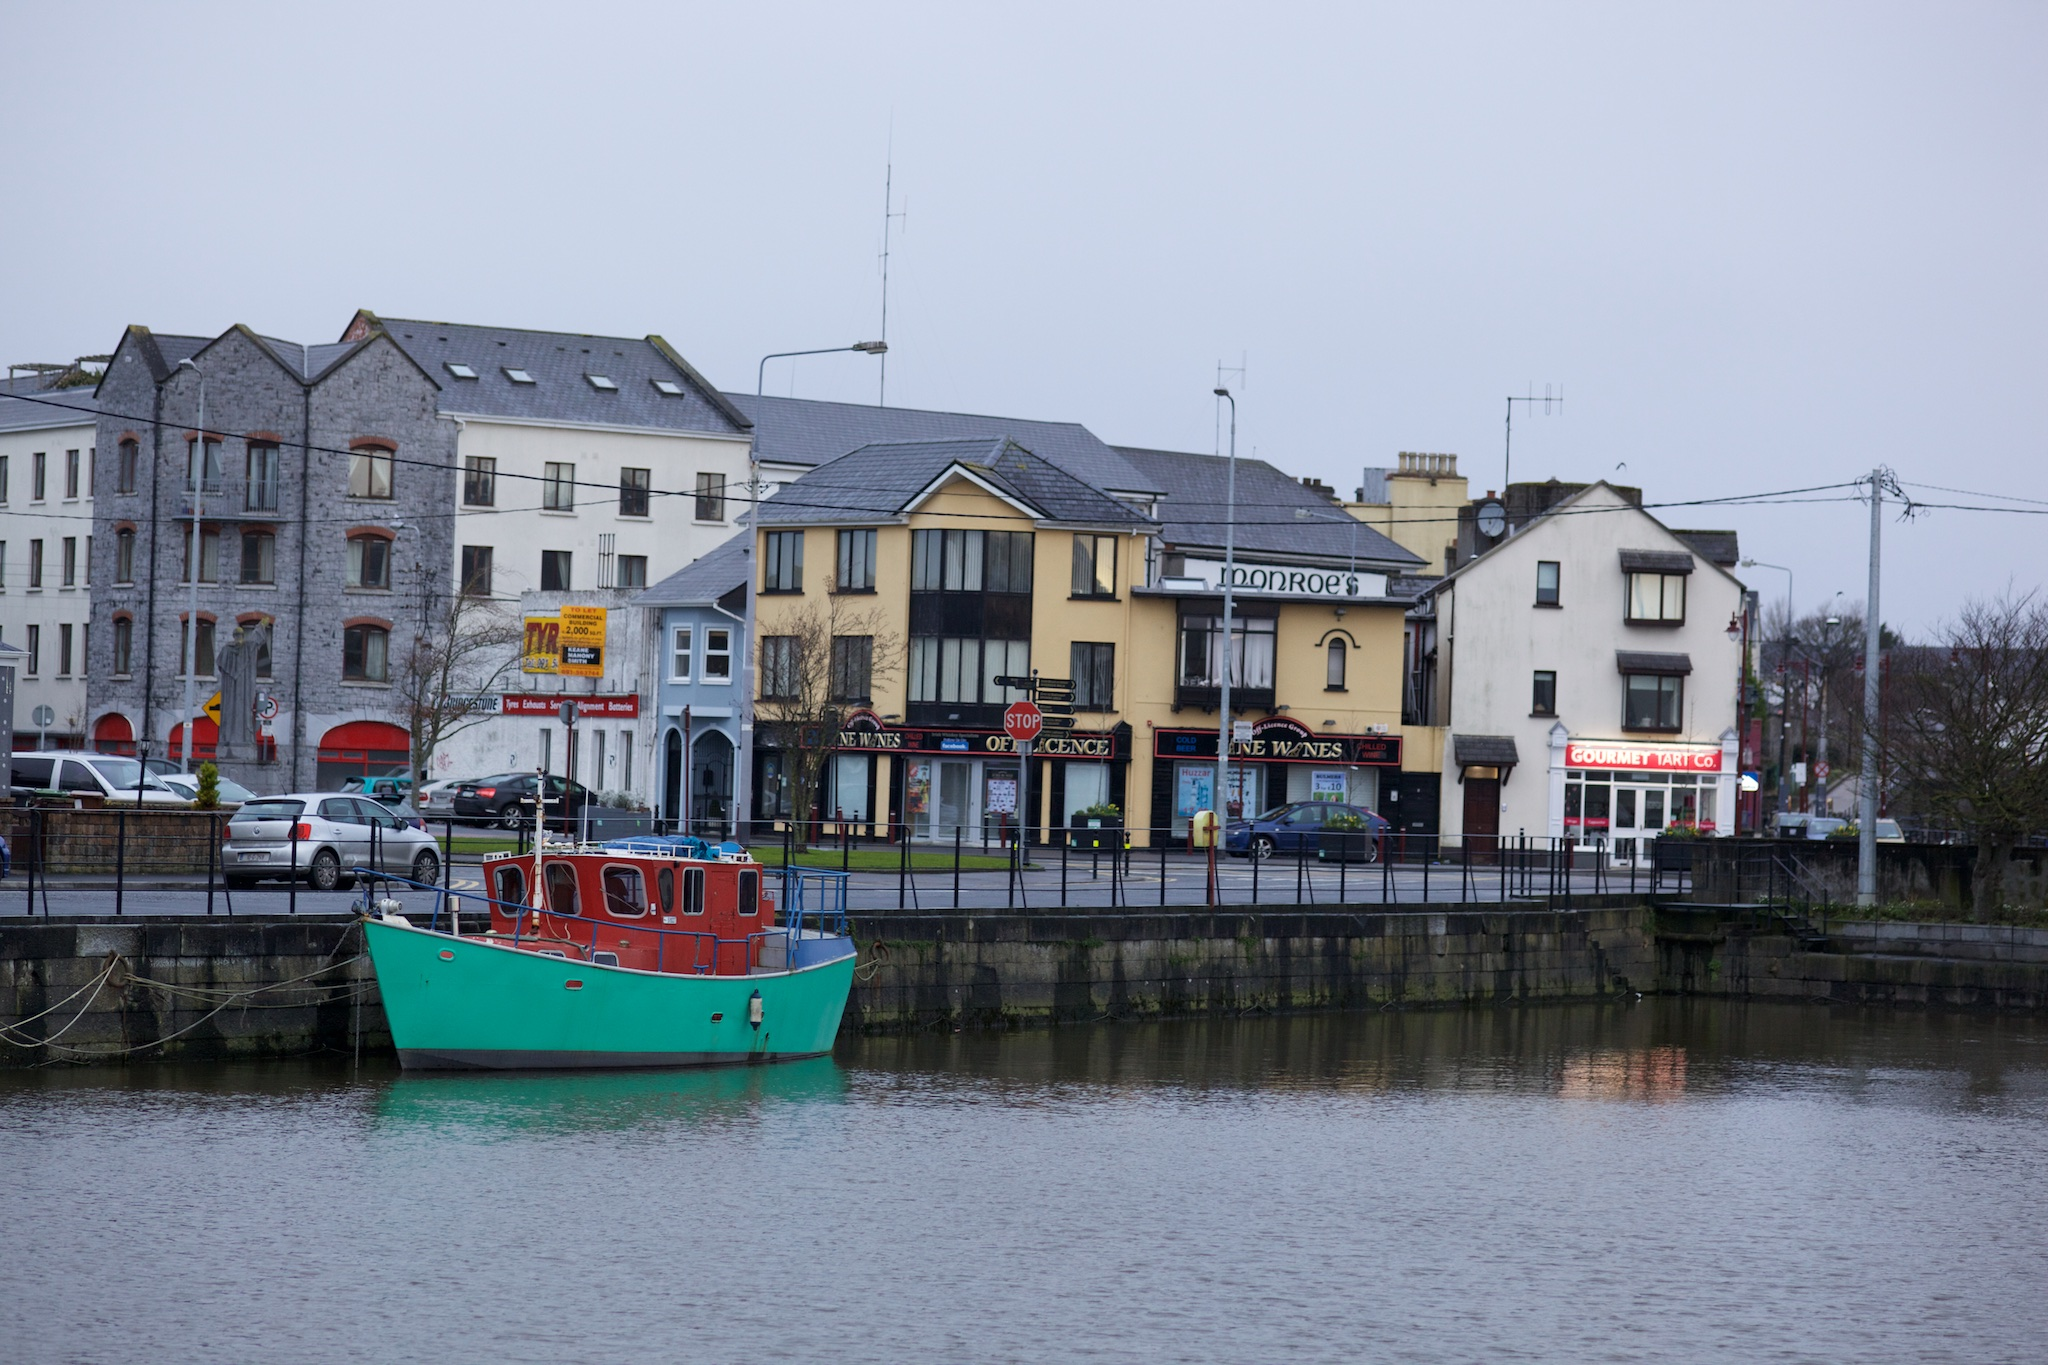 The downtown of Galway, Ireland